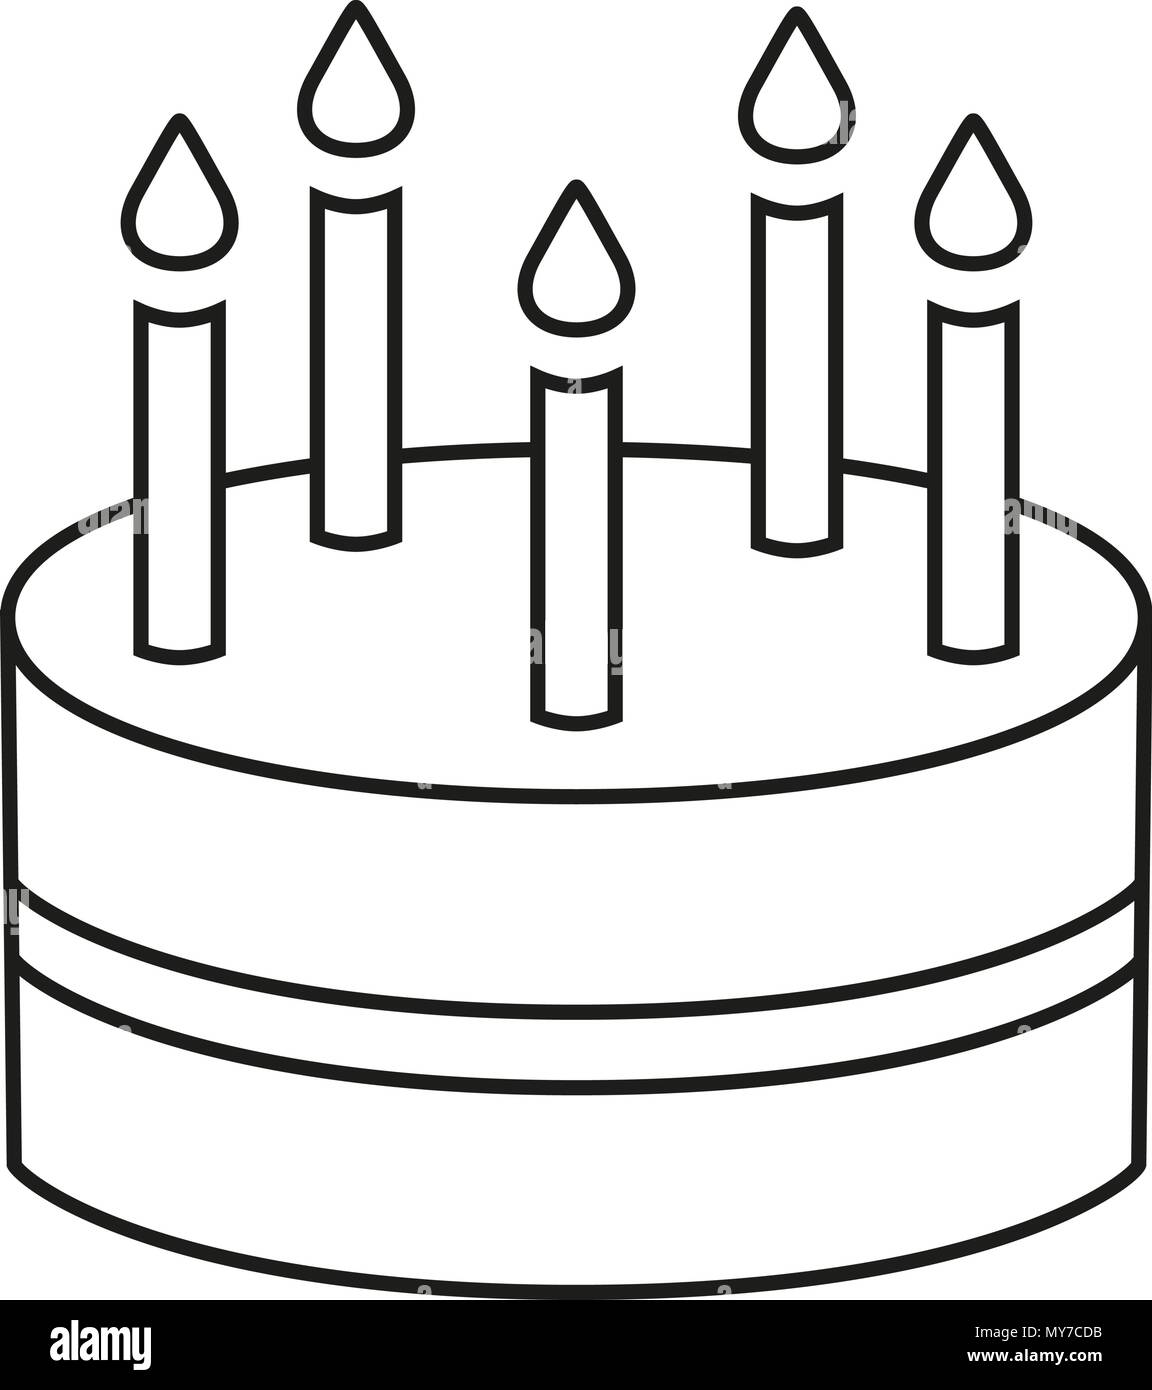 Line Art Black And White Birthday Cake 5 Candles Stock Vector Art